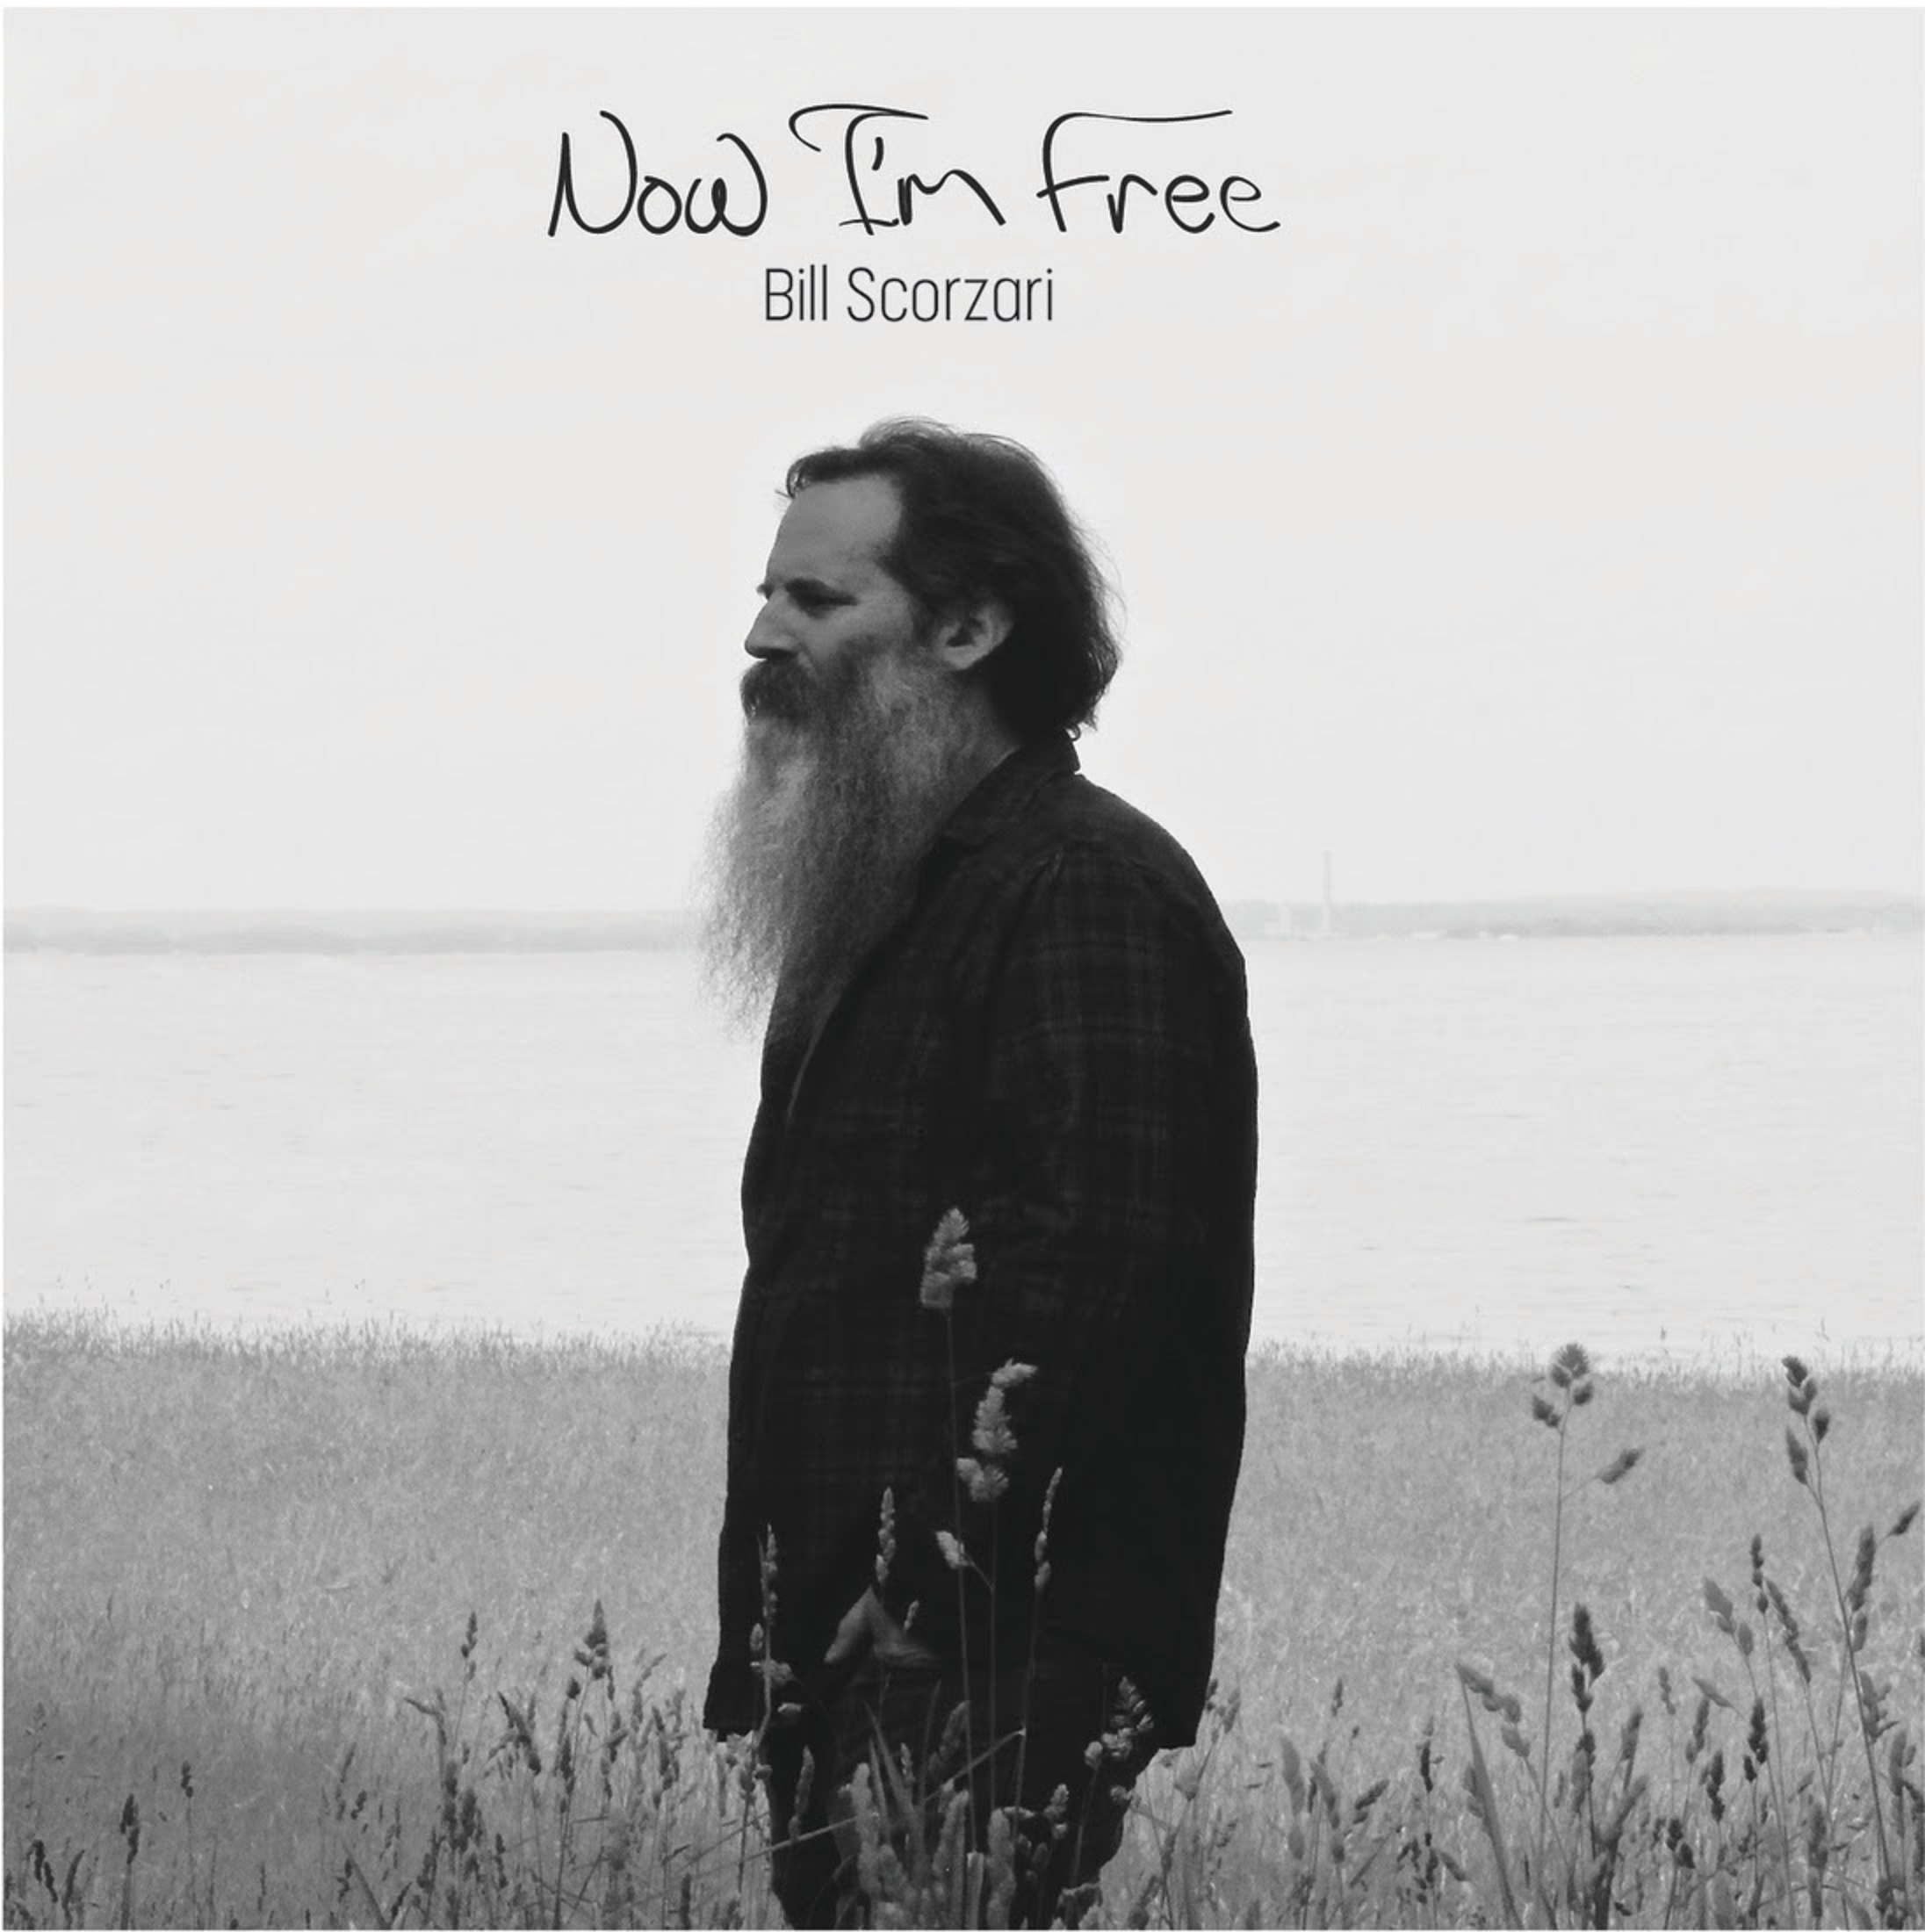 Bill Scorzari Releases His 3rd Studio Album, Now I'm Free, September 20, 2019